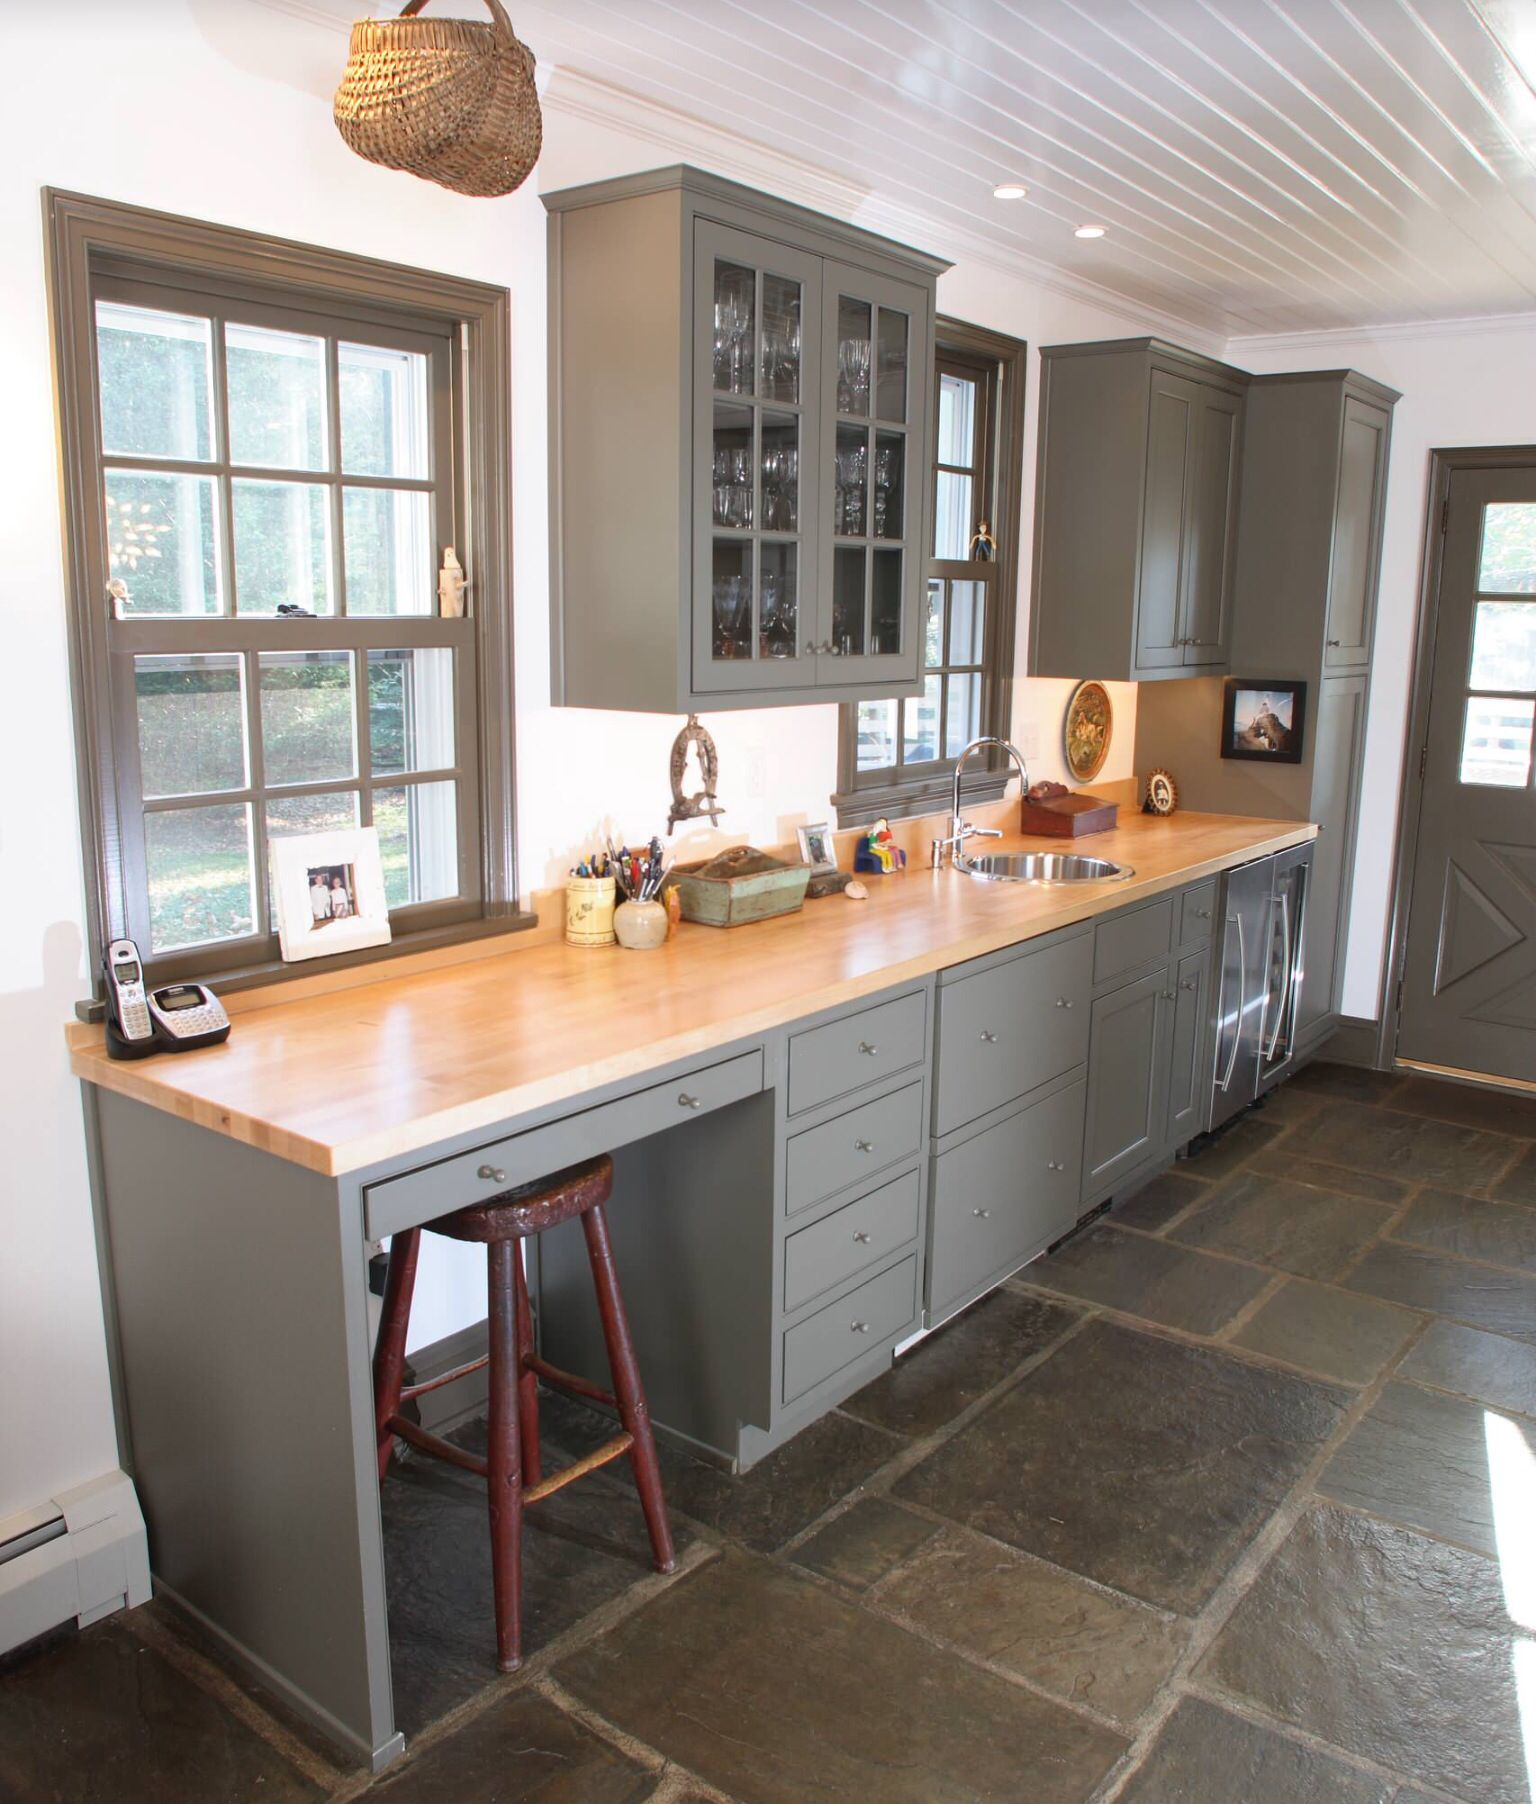 Kitchen with worm gray color and work corner | kitchen מטבחים ...